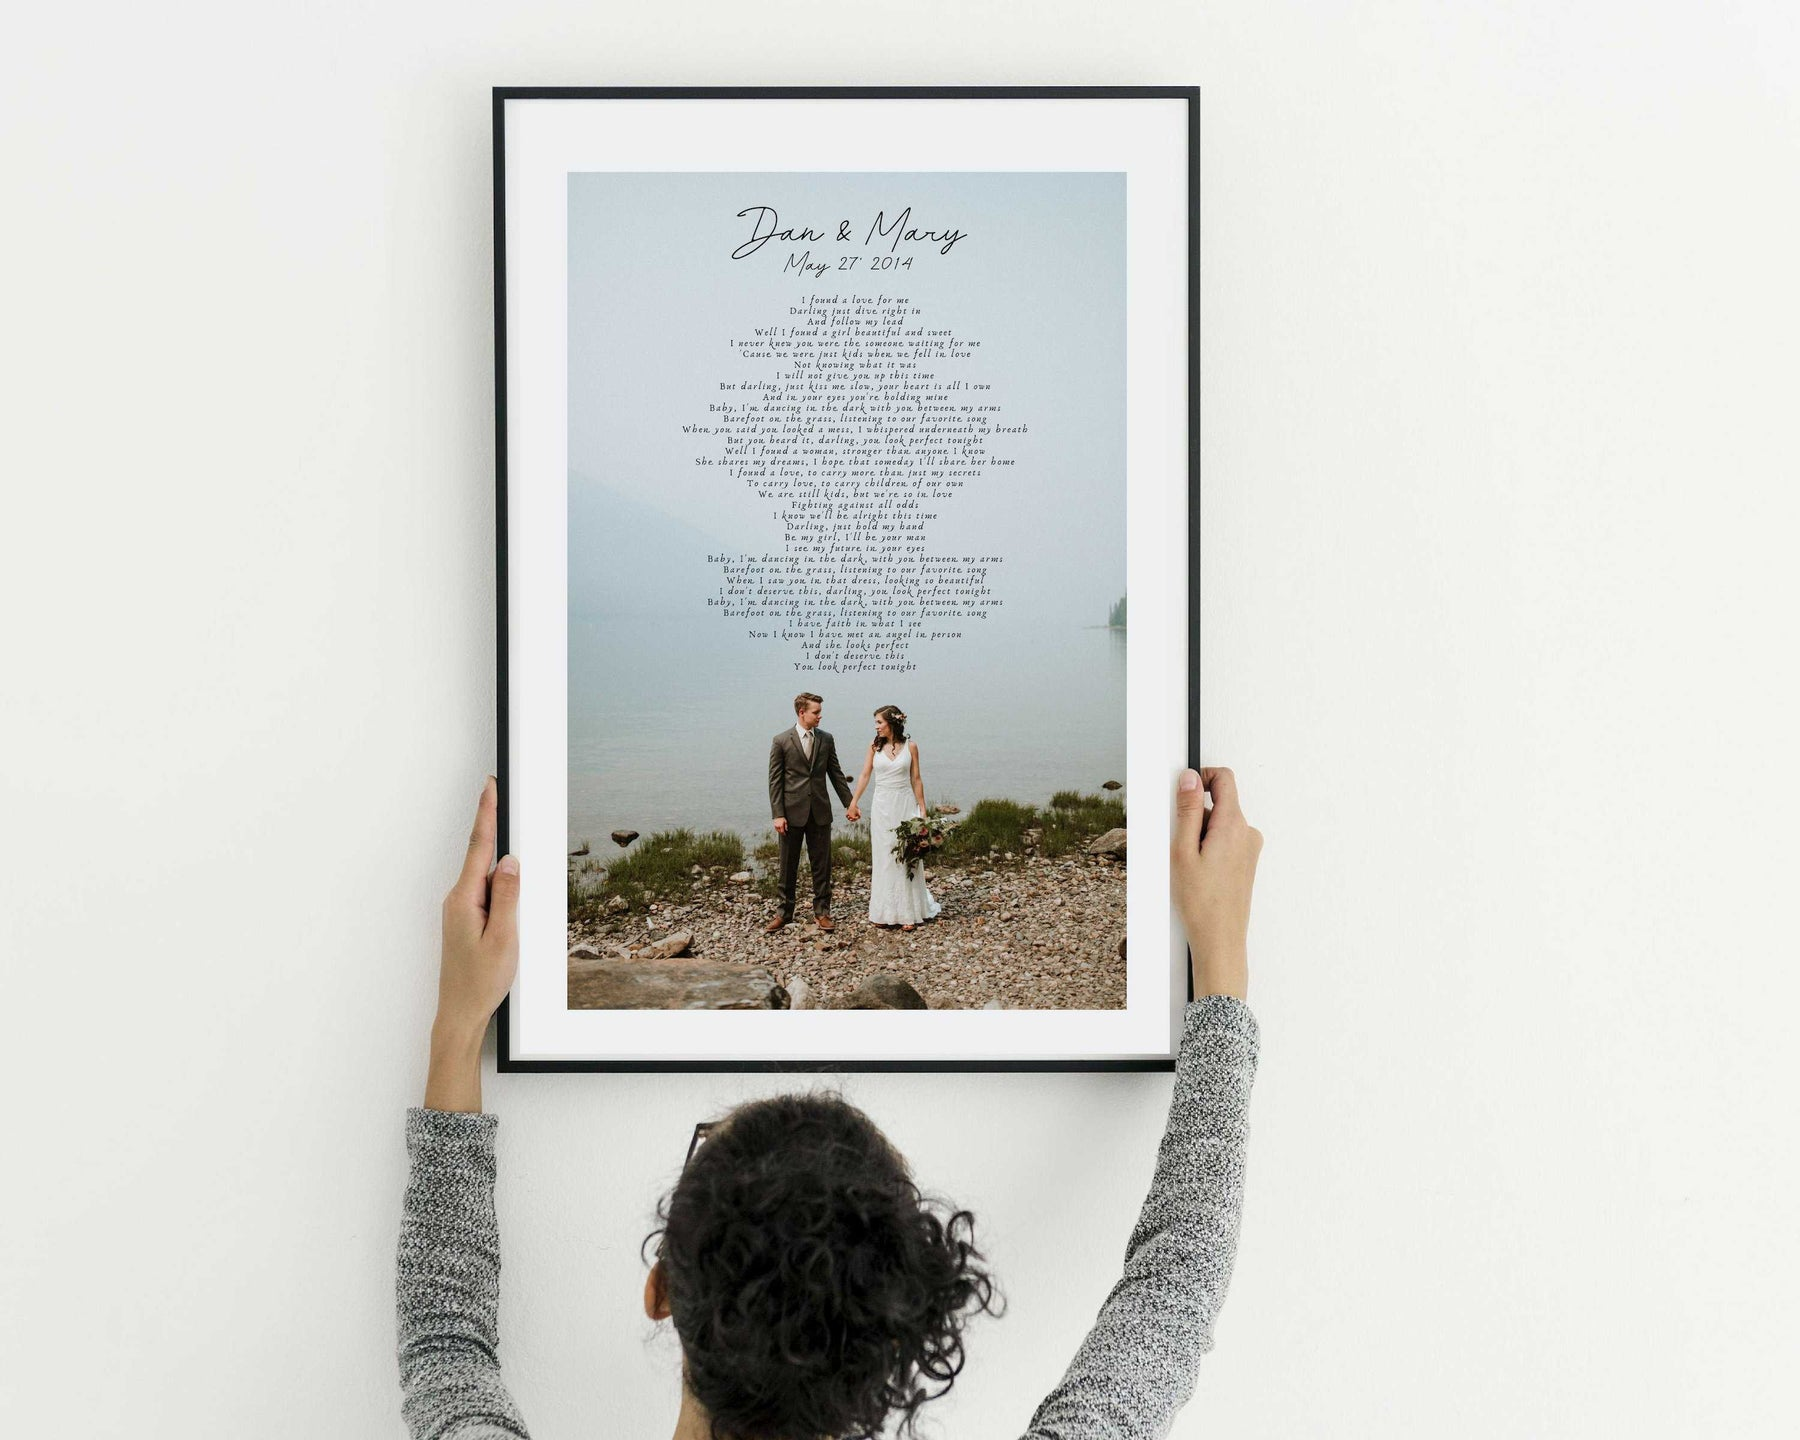 Wedding Anniversary gift personalized with photograph and first dance song lyrics or wedding vows framed artwork wall art decor